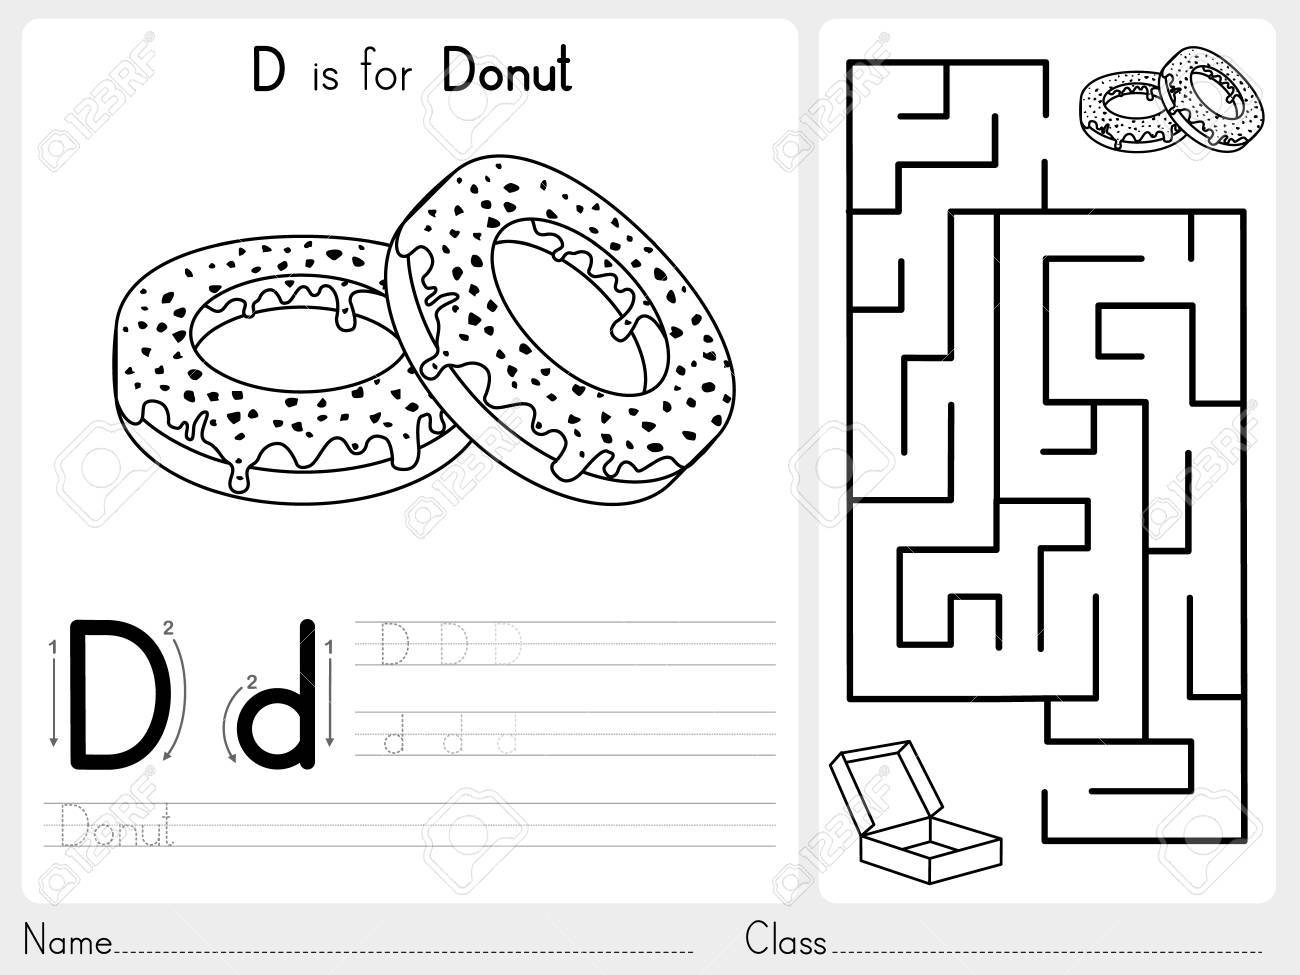 Alphabet A-Z Tracing And Puzzle Worksheet, Exercises For Kids.. within Alphabet Tracing Puzzle